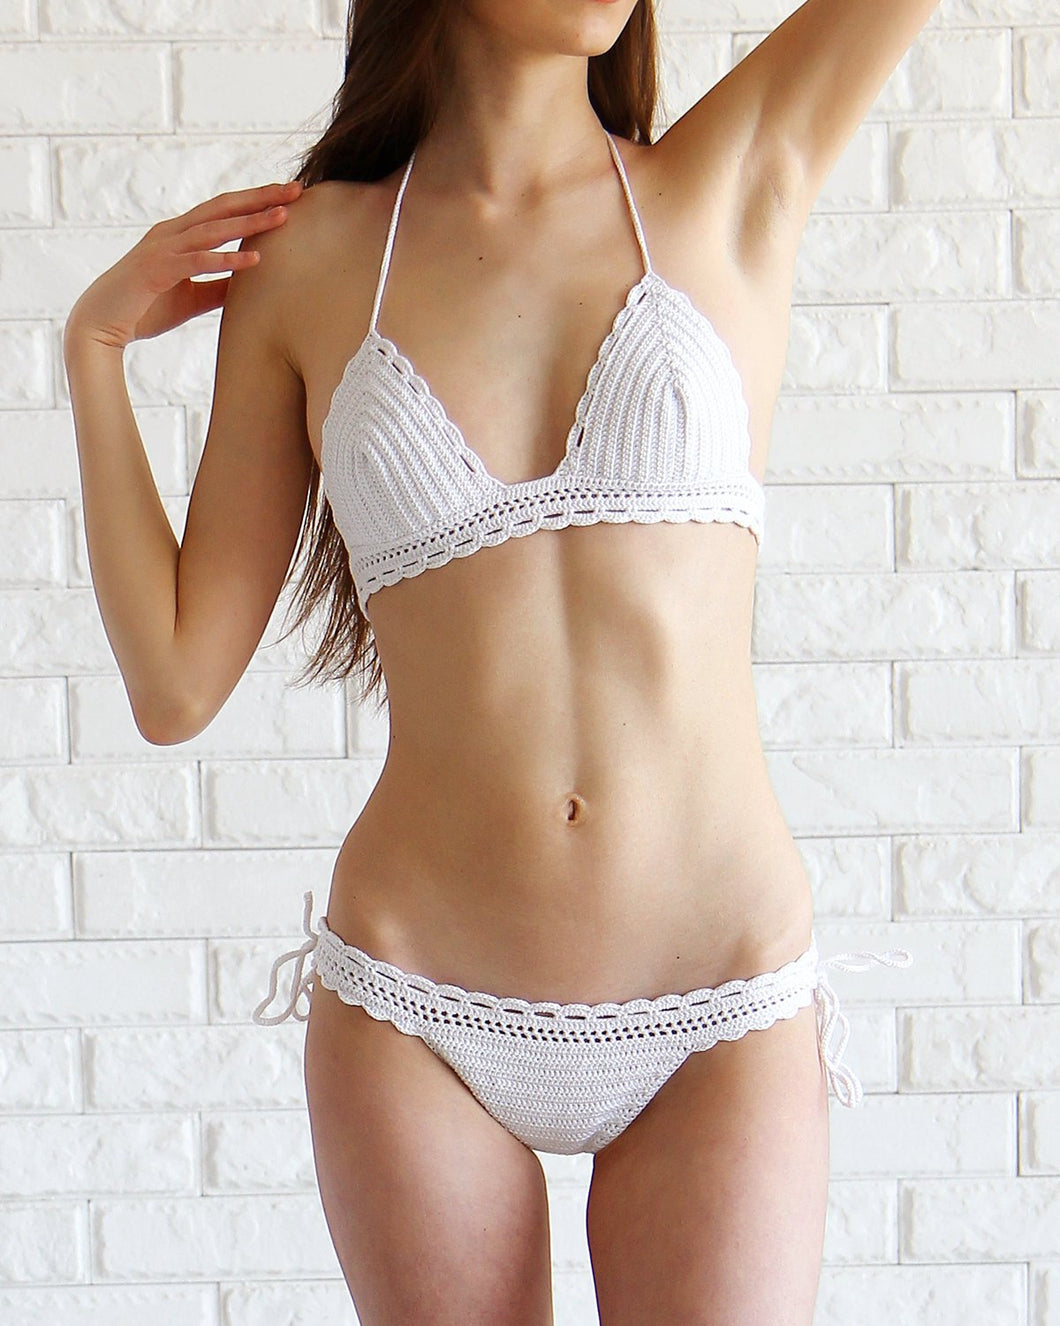 white crochet bathing suit with a delicate scalloped edge and lace detailing